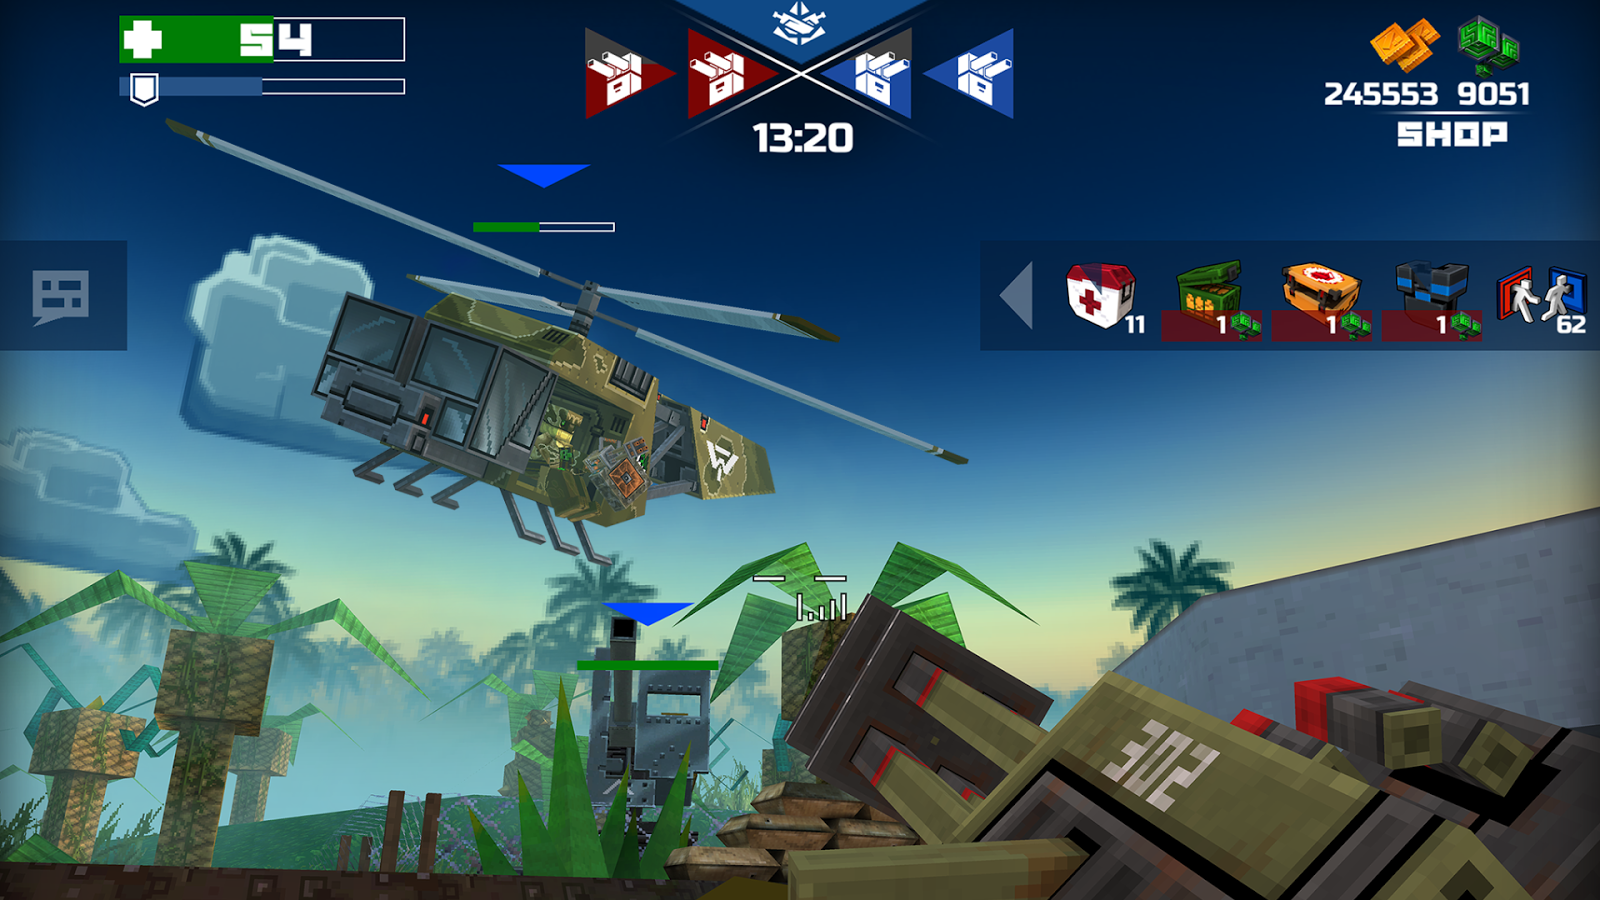 Pixelfield - Best FPS MOBA Strategy Game Screenshot 4